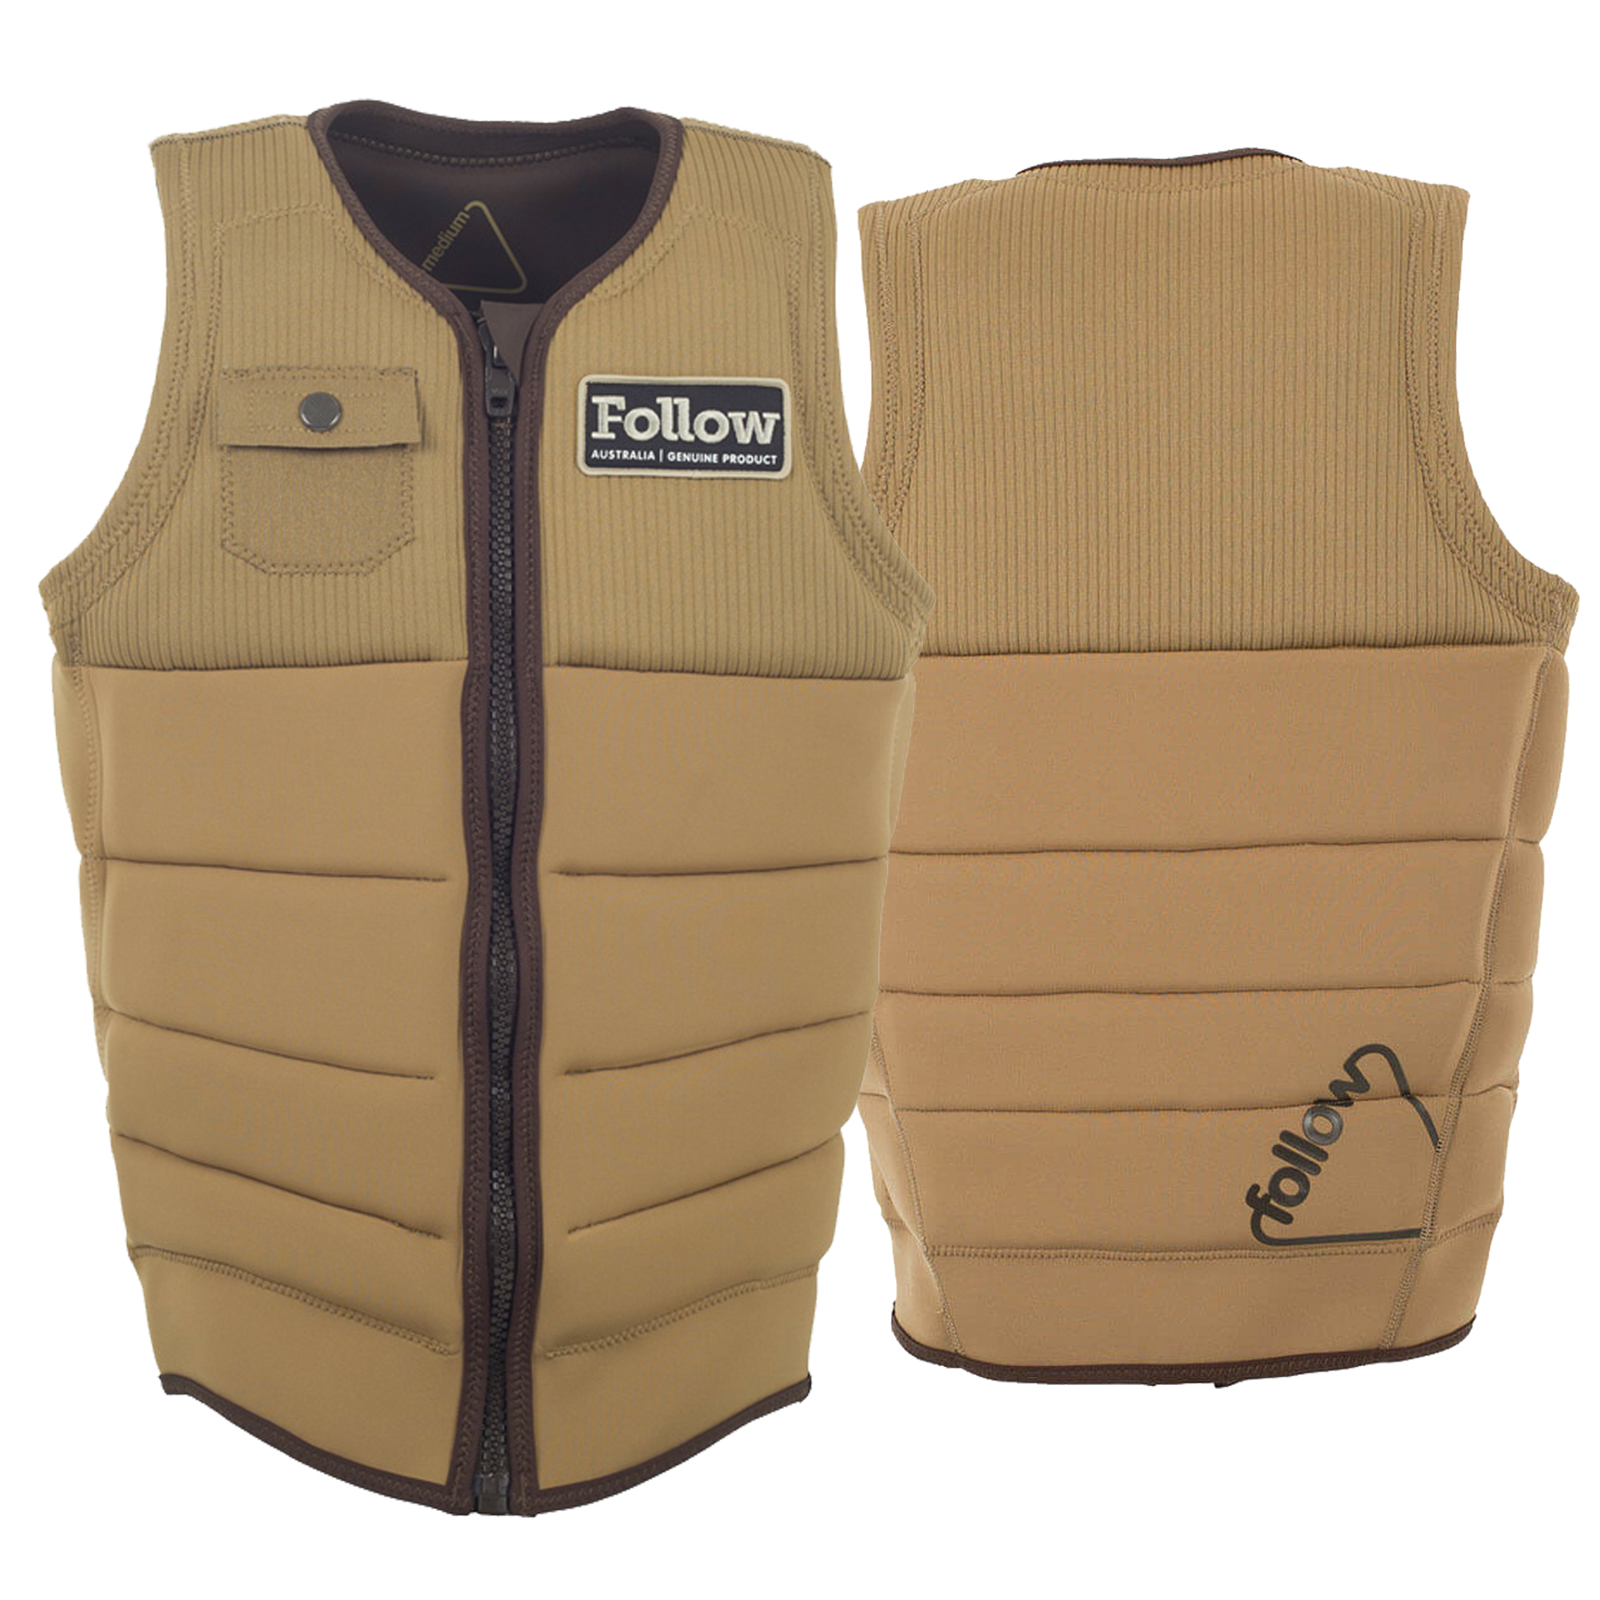 MITCH PRO IMPACT VEST TAN FOLLOW 2017